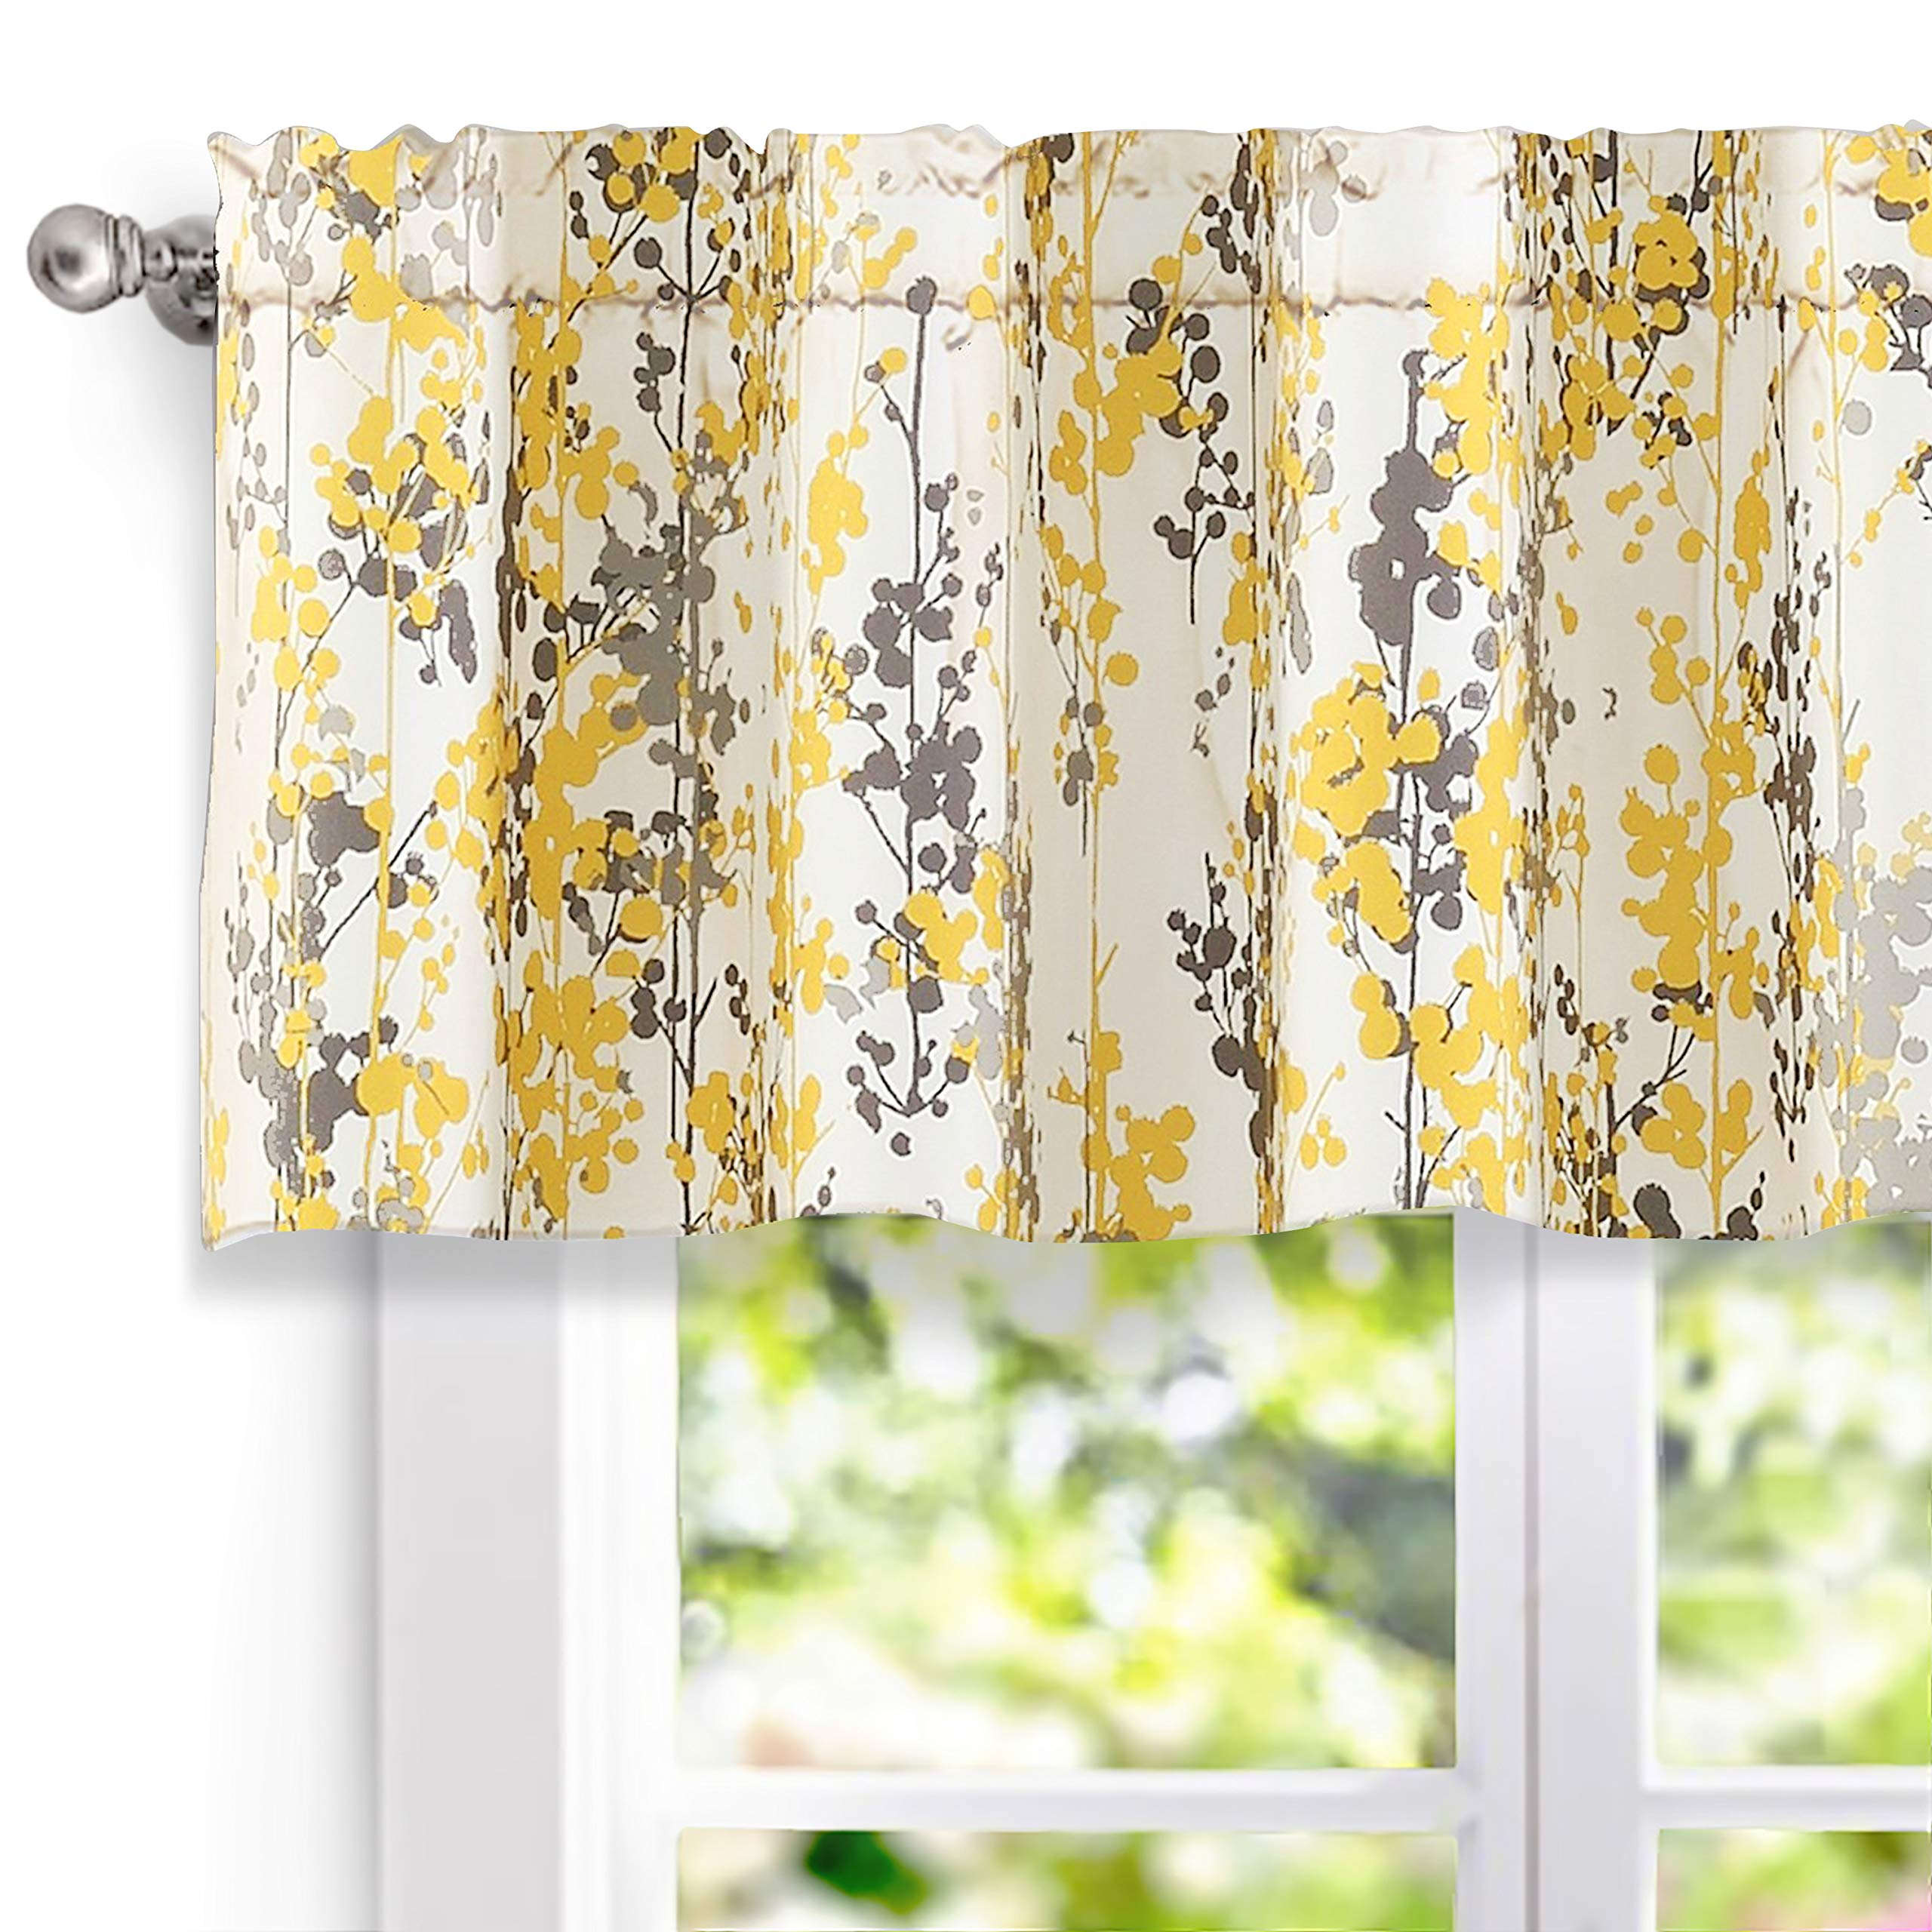 DriftAway Leah Abstract Floral Blossom Ink Painting Window Curtain Valance (Yellow/Silver/Gray, 52''x18''+2'' Header)